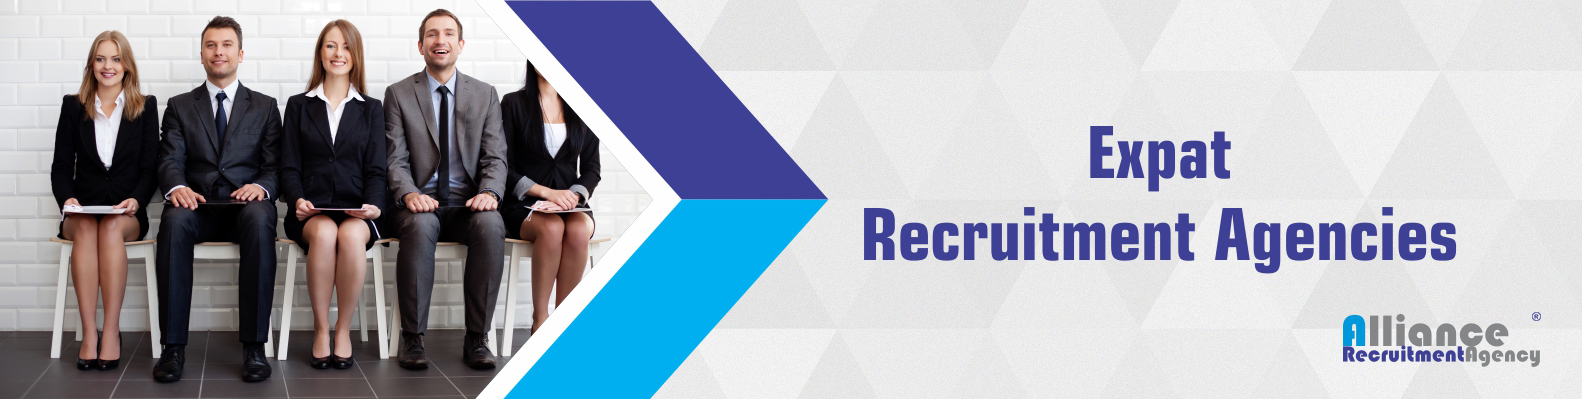 Expat Recruitment - Expat Recruitment Agencies In India